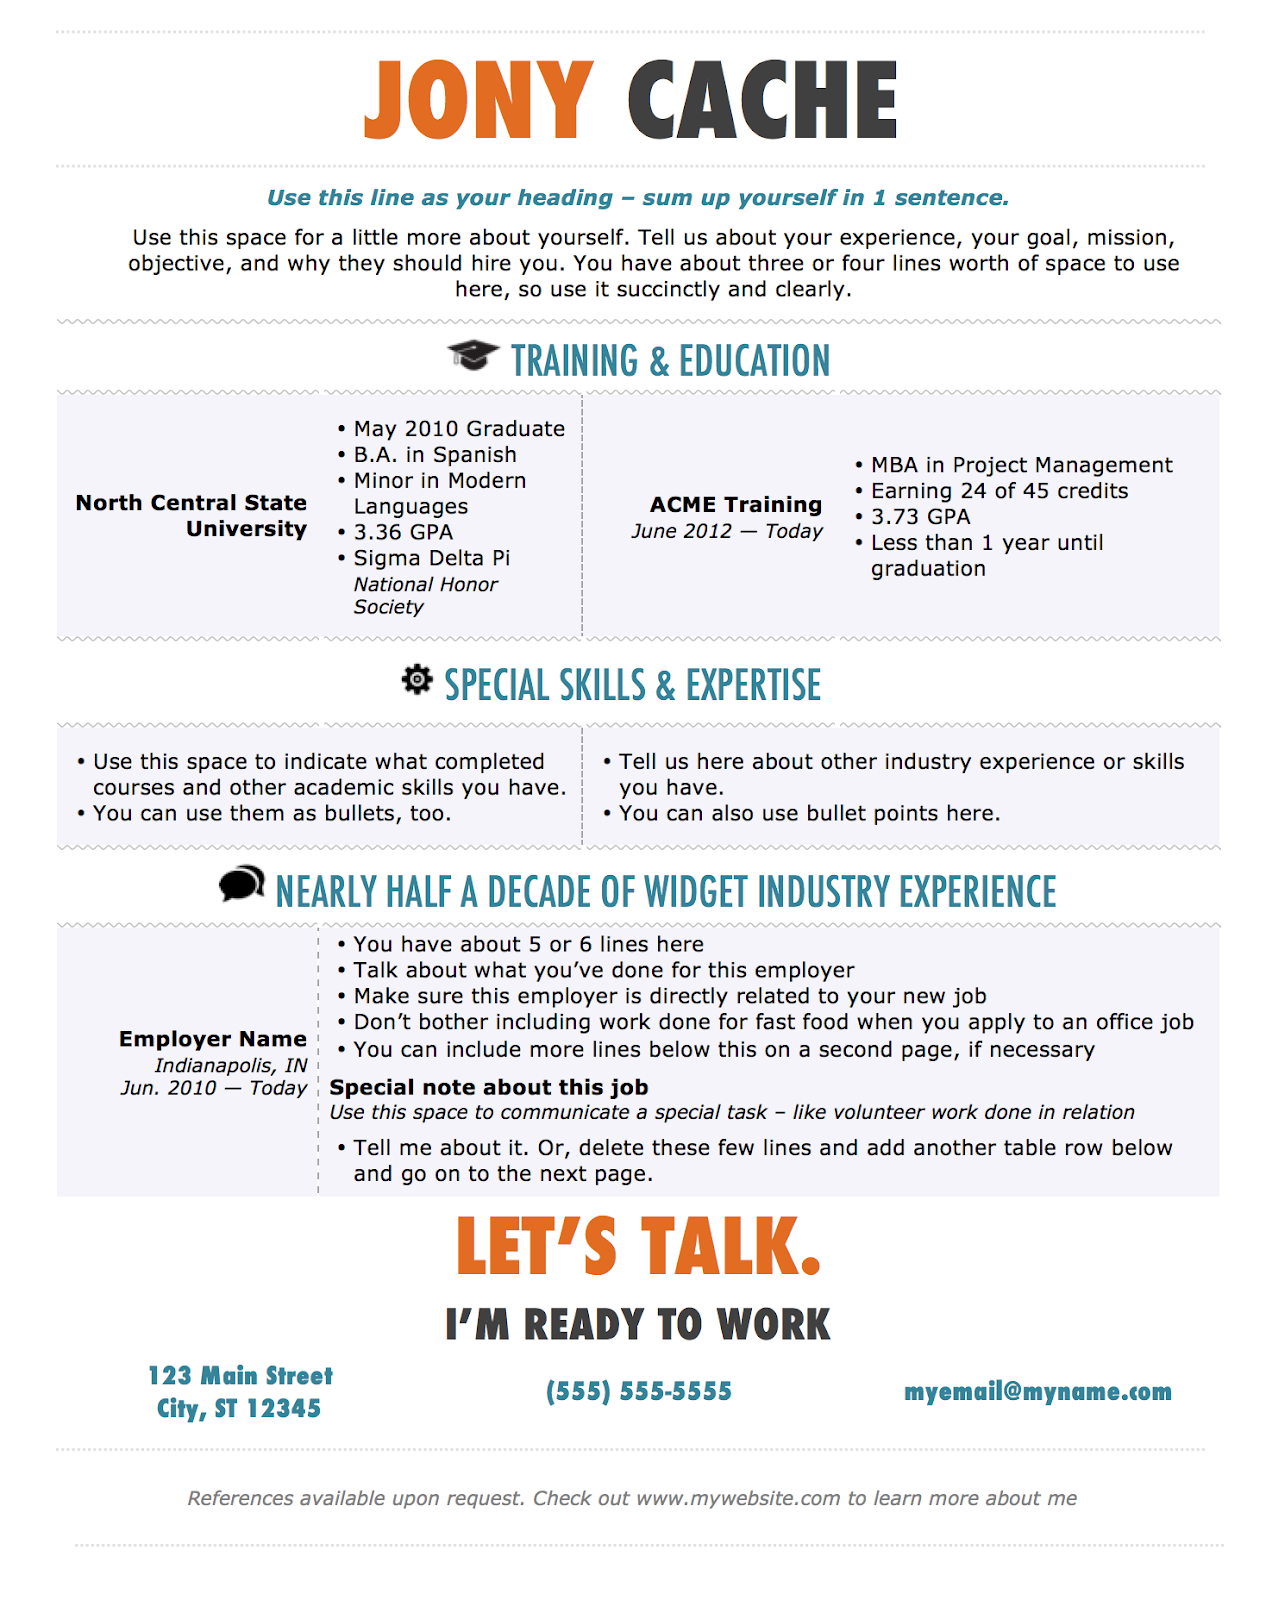 basic resume template word free download free resume template wordpress free resume templates wordpress free resume template word free resume template word document download free resume template word document free resume template word creative free resume templates word download free resume templates word 2018 free resume templates word document free resume templates word 2019 free resume templates word doc